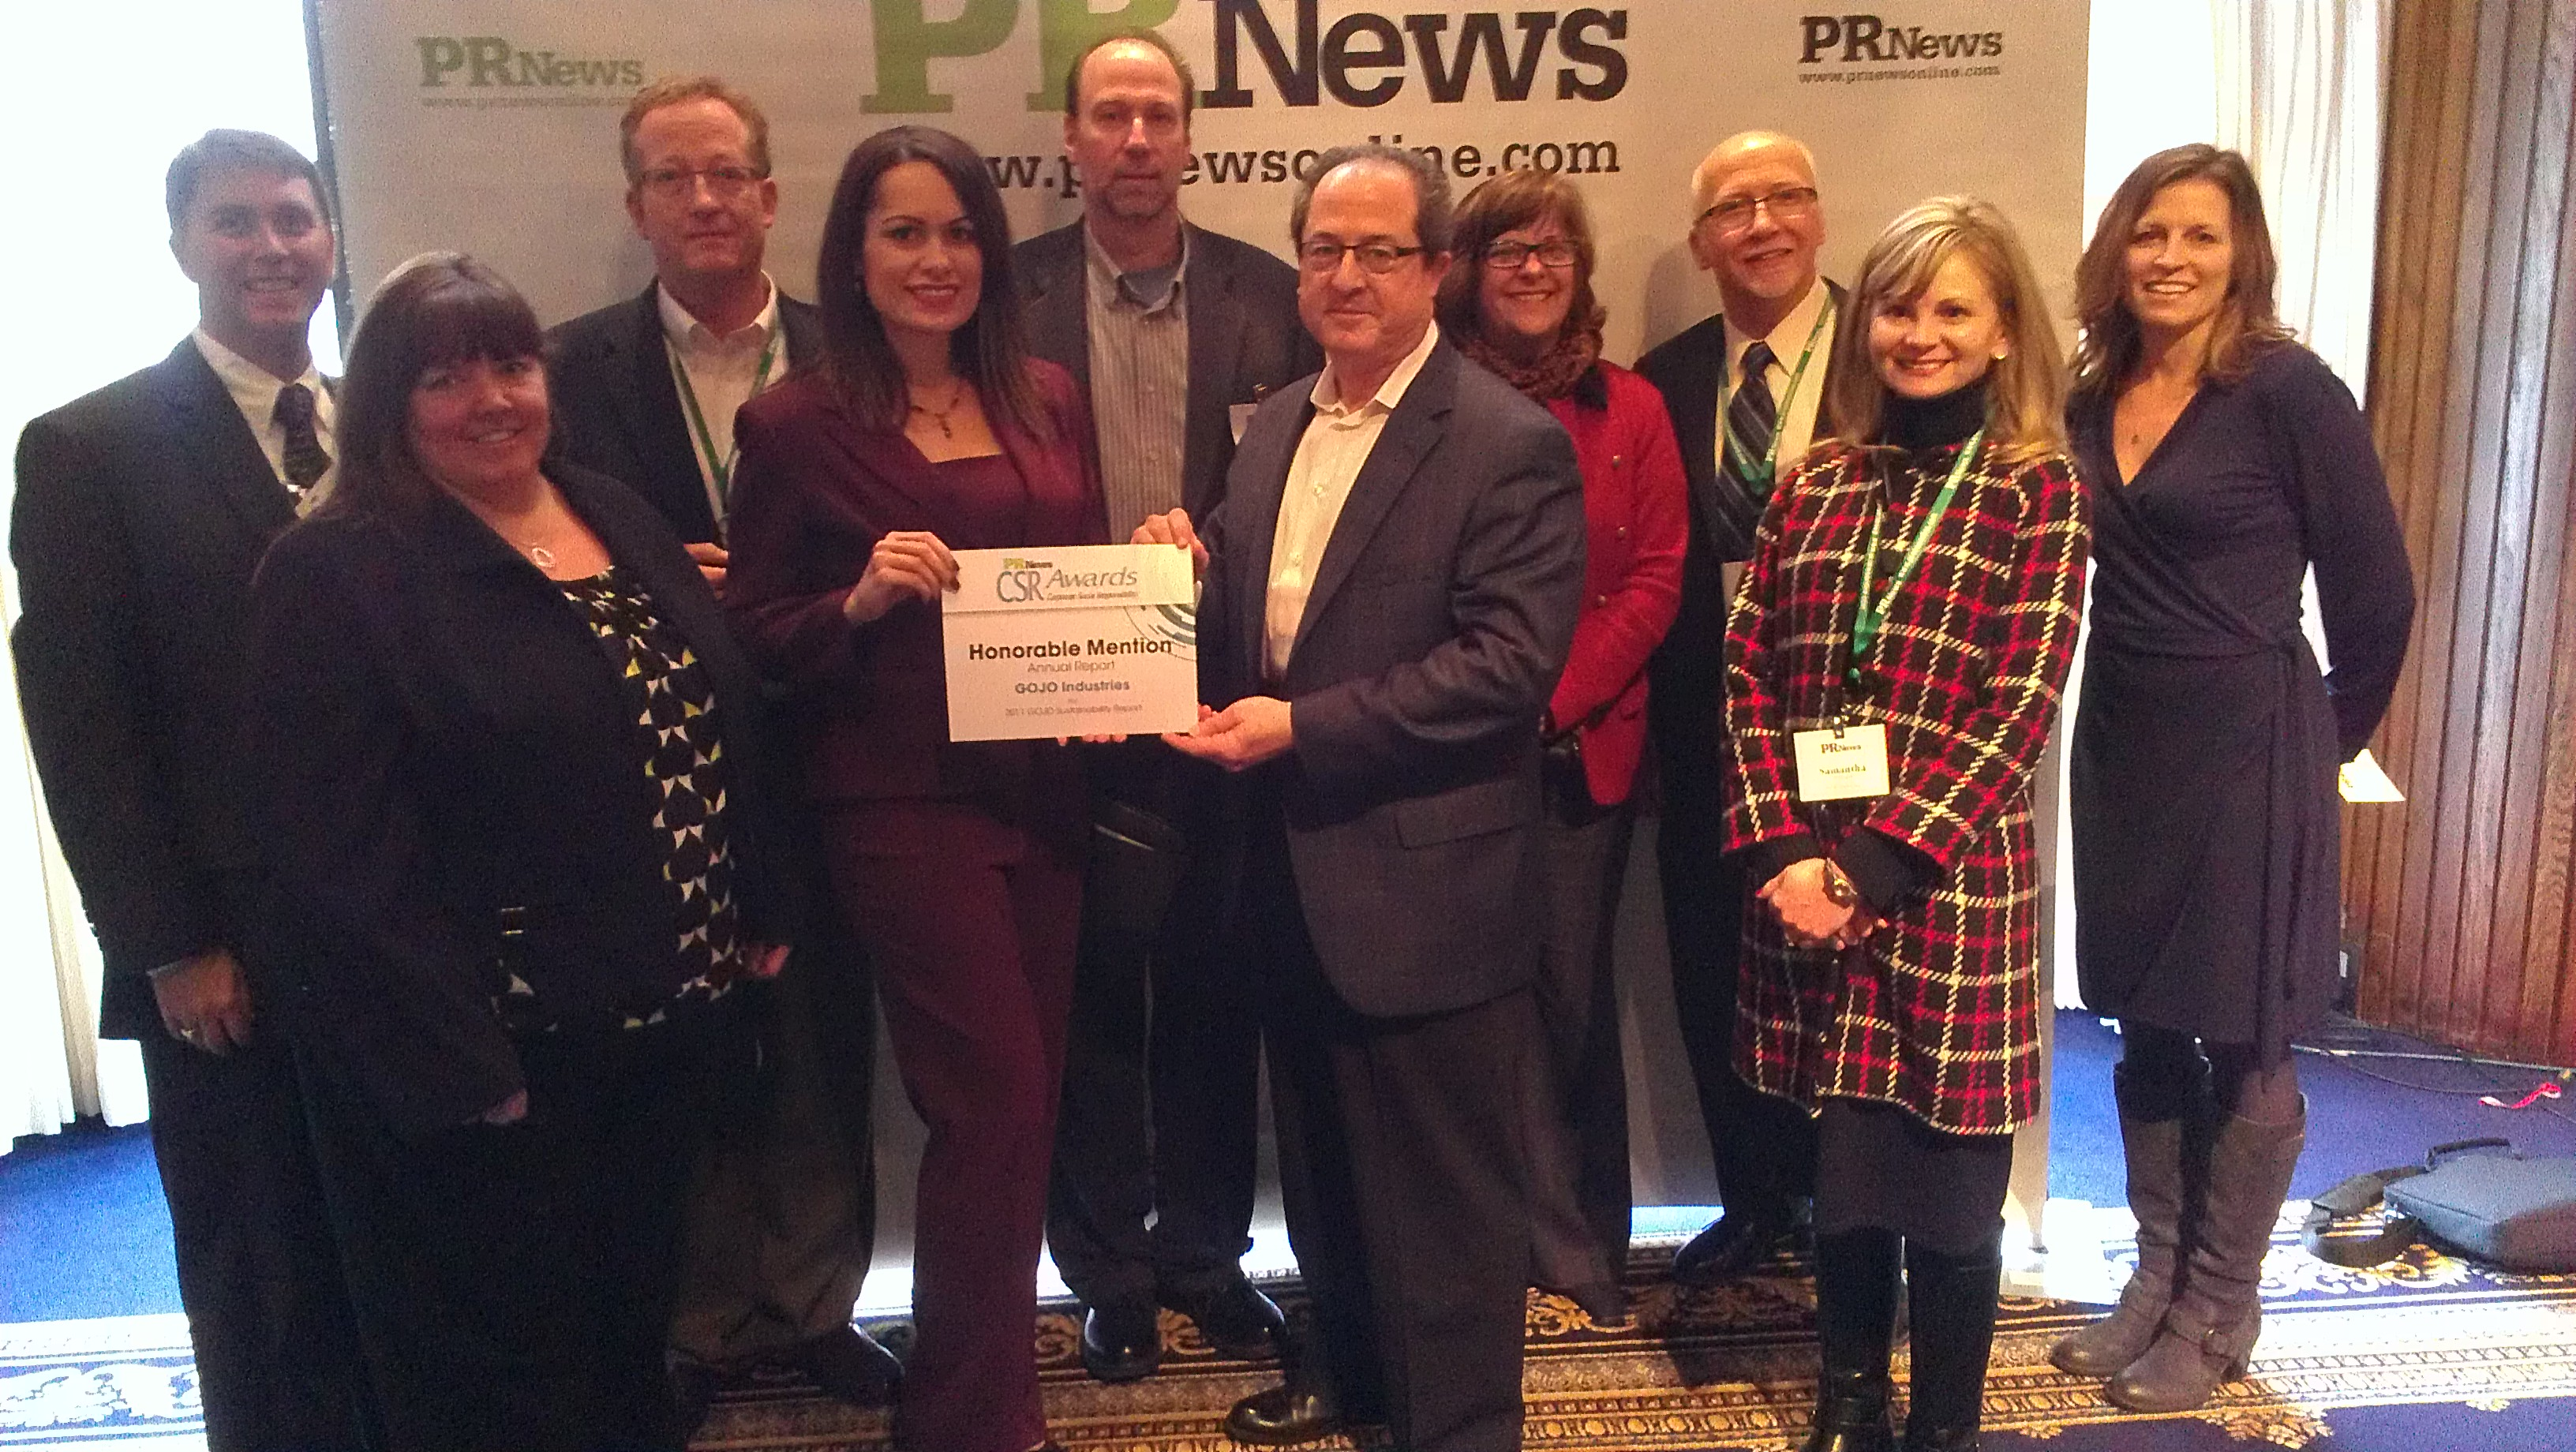 GOJO Industries, Inc. and  Innis Maggiore attend the PR News CSR Awards